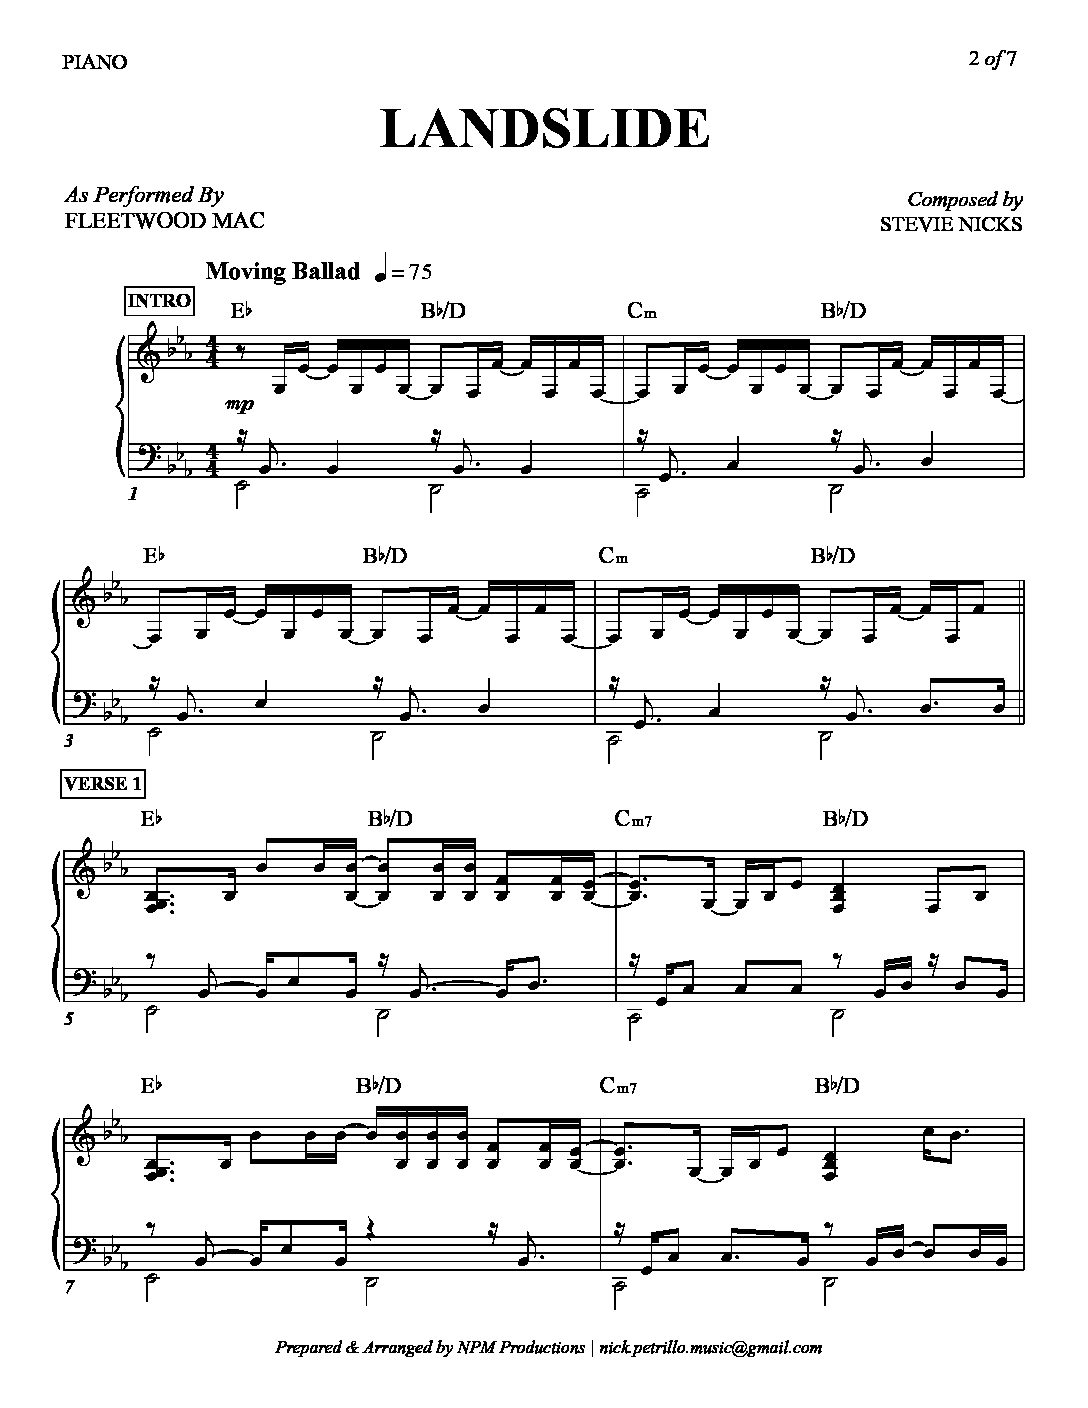 Have Yourself A Merry Little Christmas Lead Sheet.Landslide